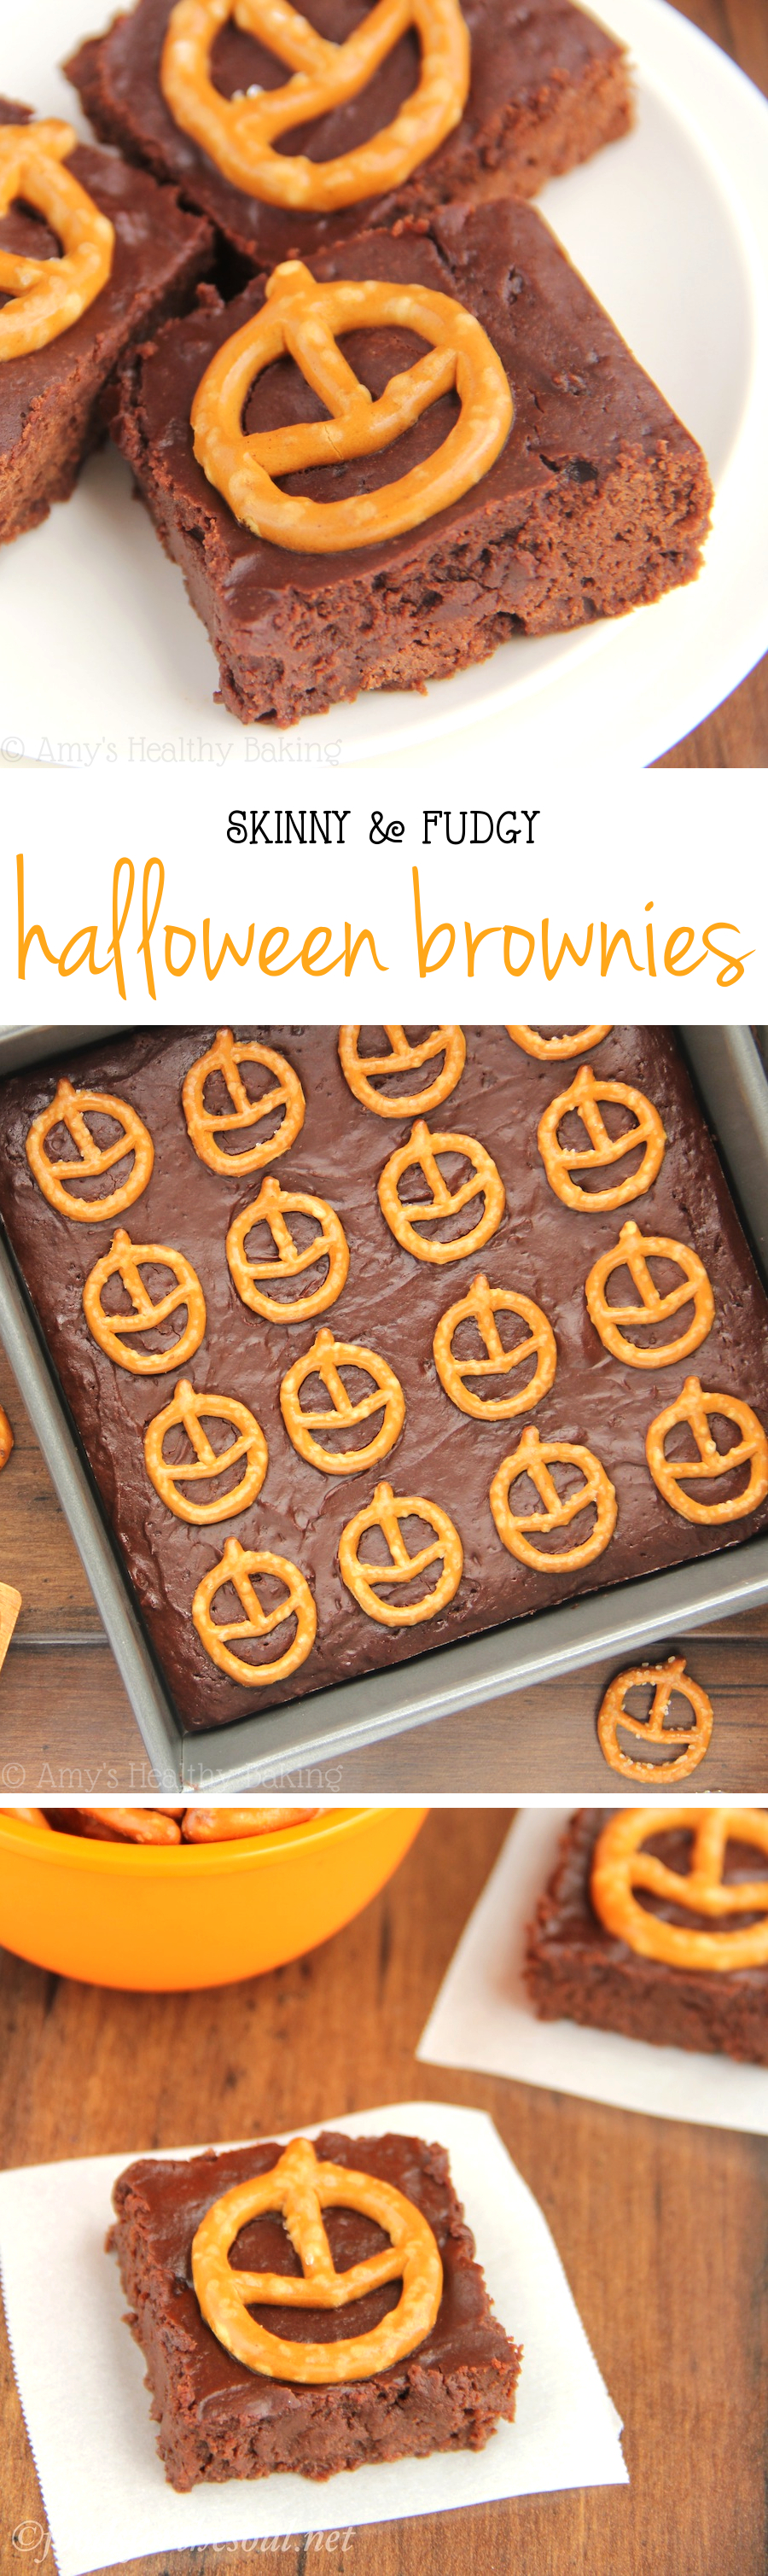 Skinny & Fudgy Halloween Brownies -- so rich & secretly healthy! A super cute & easy treat!